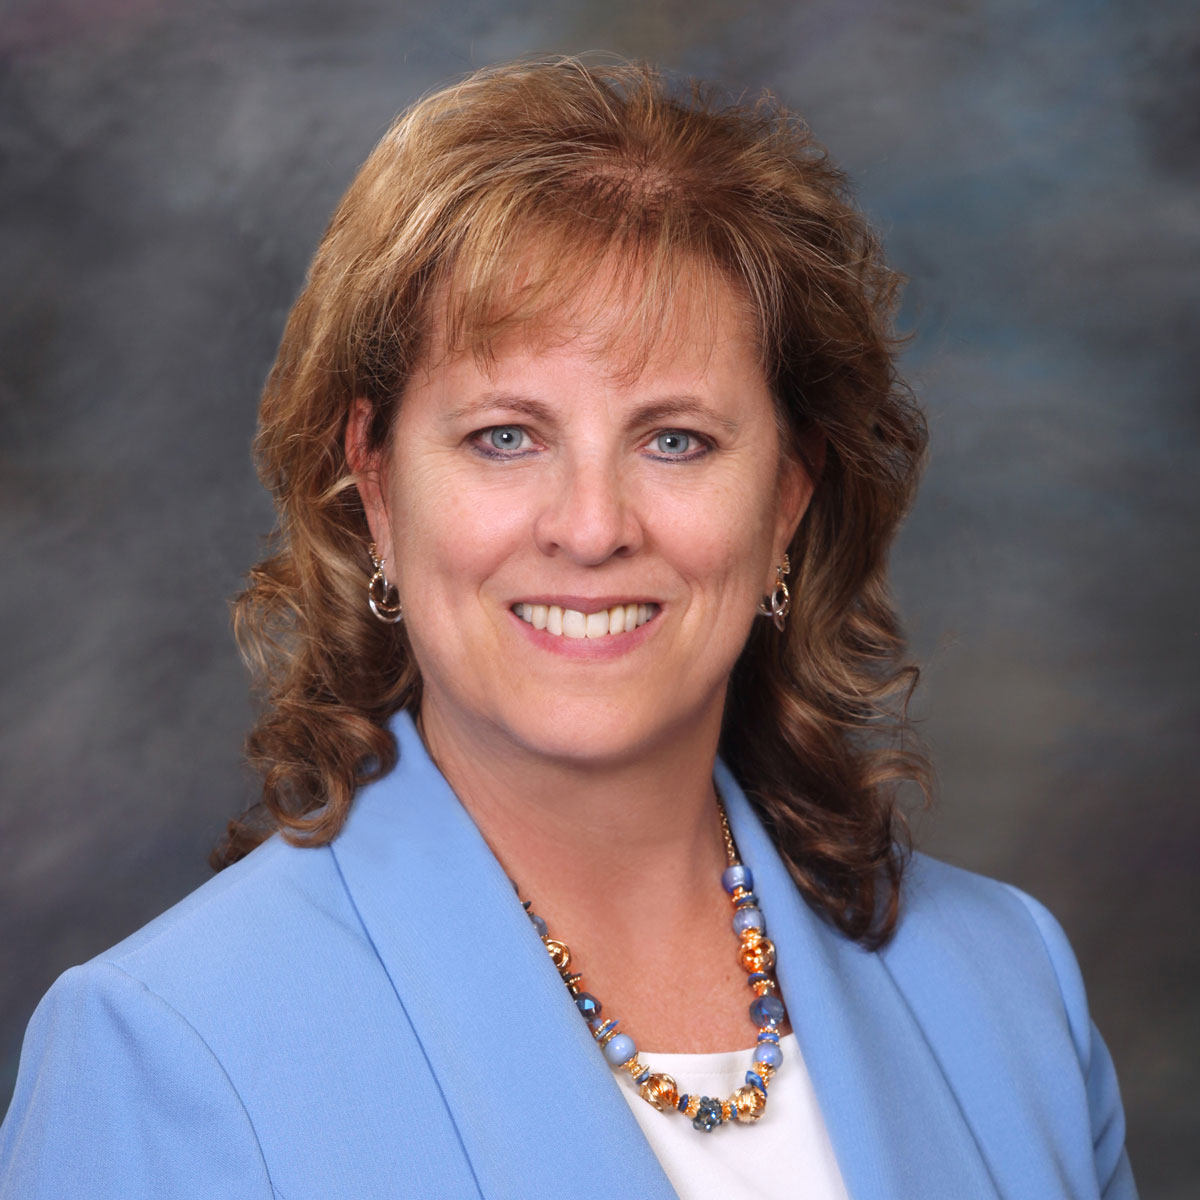 Commissioner Mary Ann Borgeson